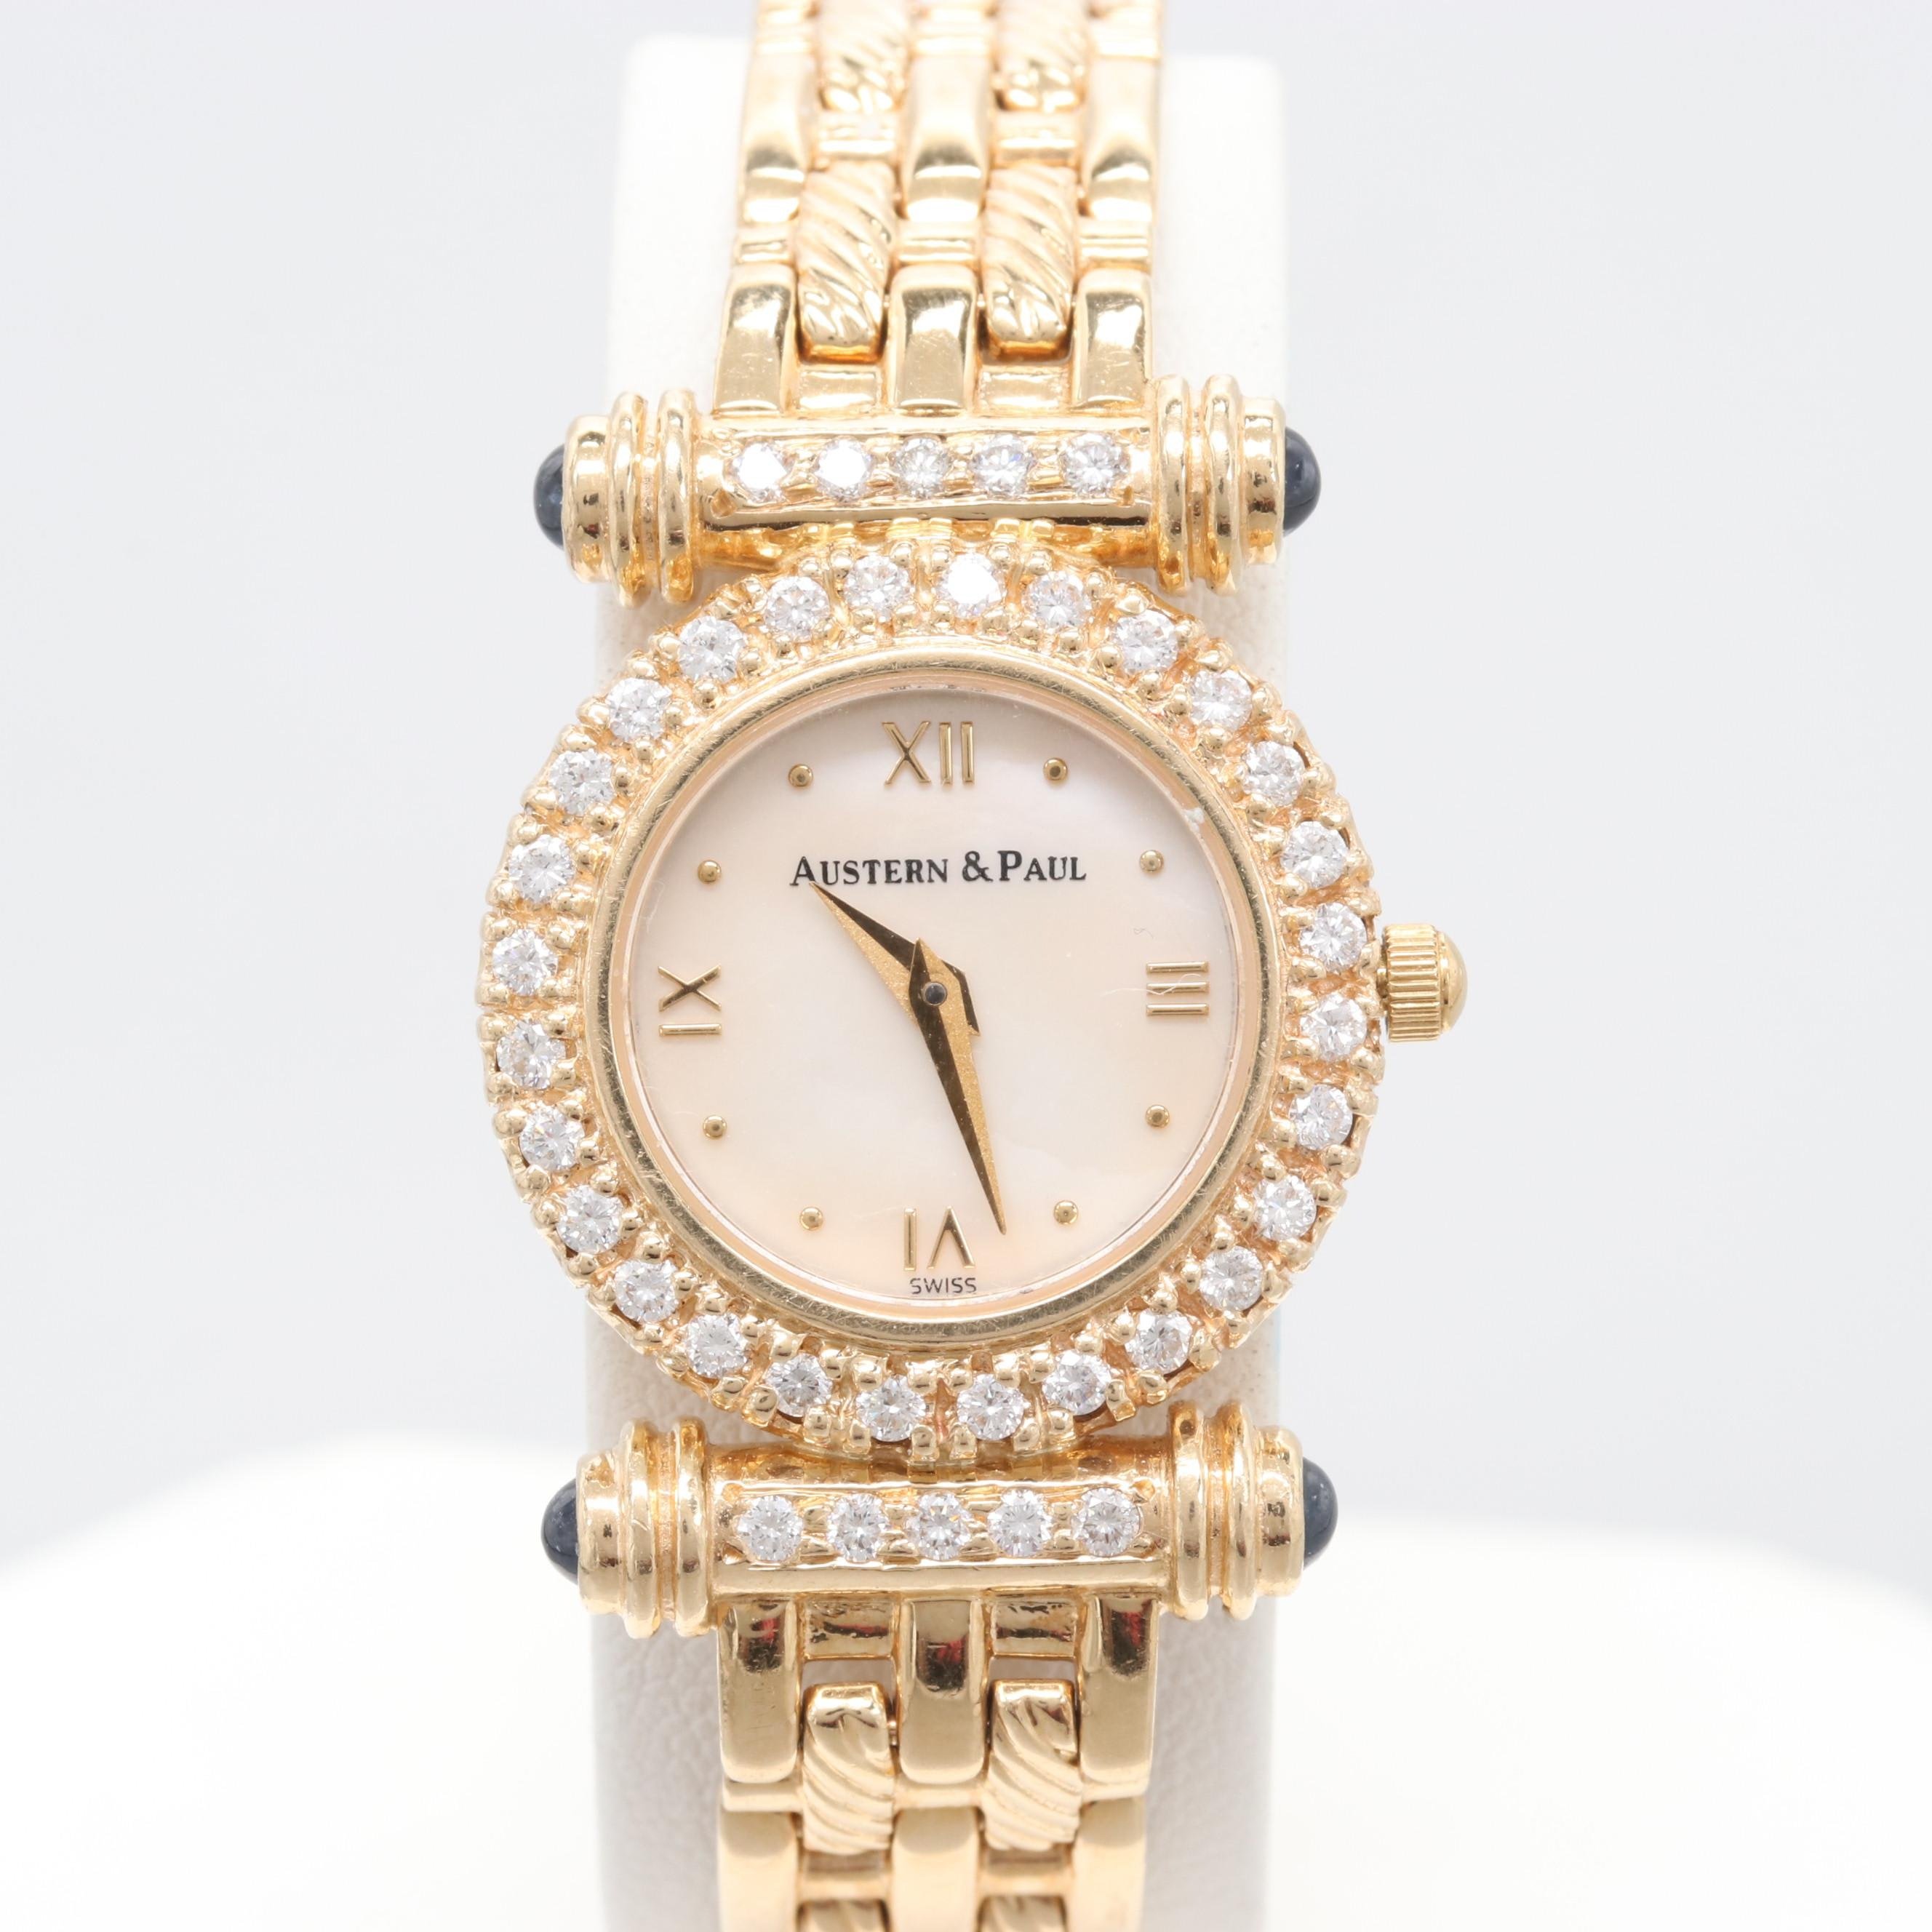 Austern & Paul 14K Yellow Gold Diamond, Sapphire and Mother of Pearl Wristwatch